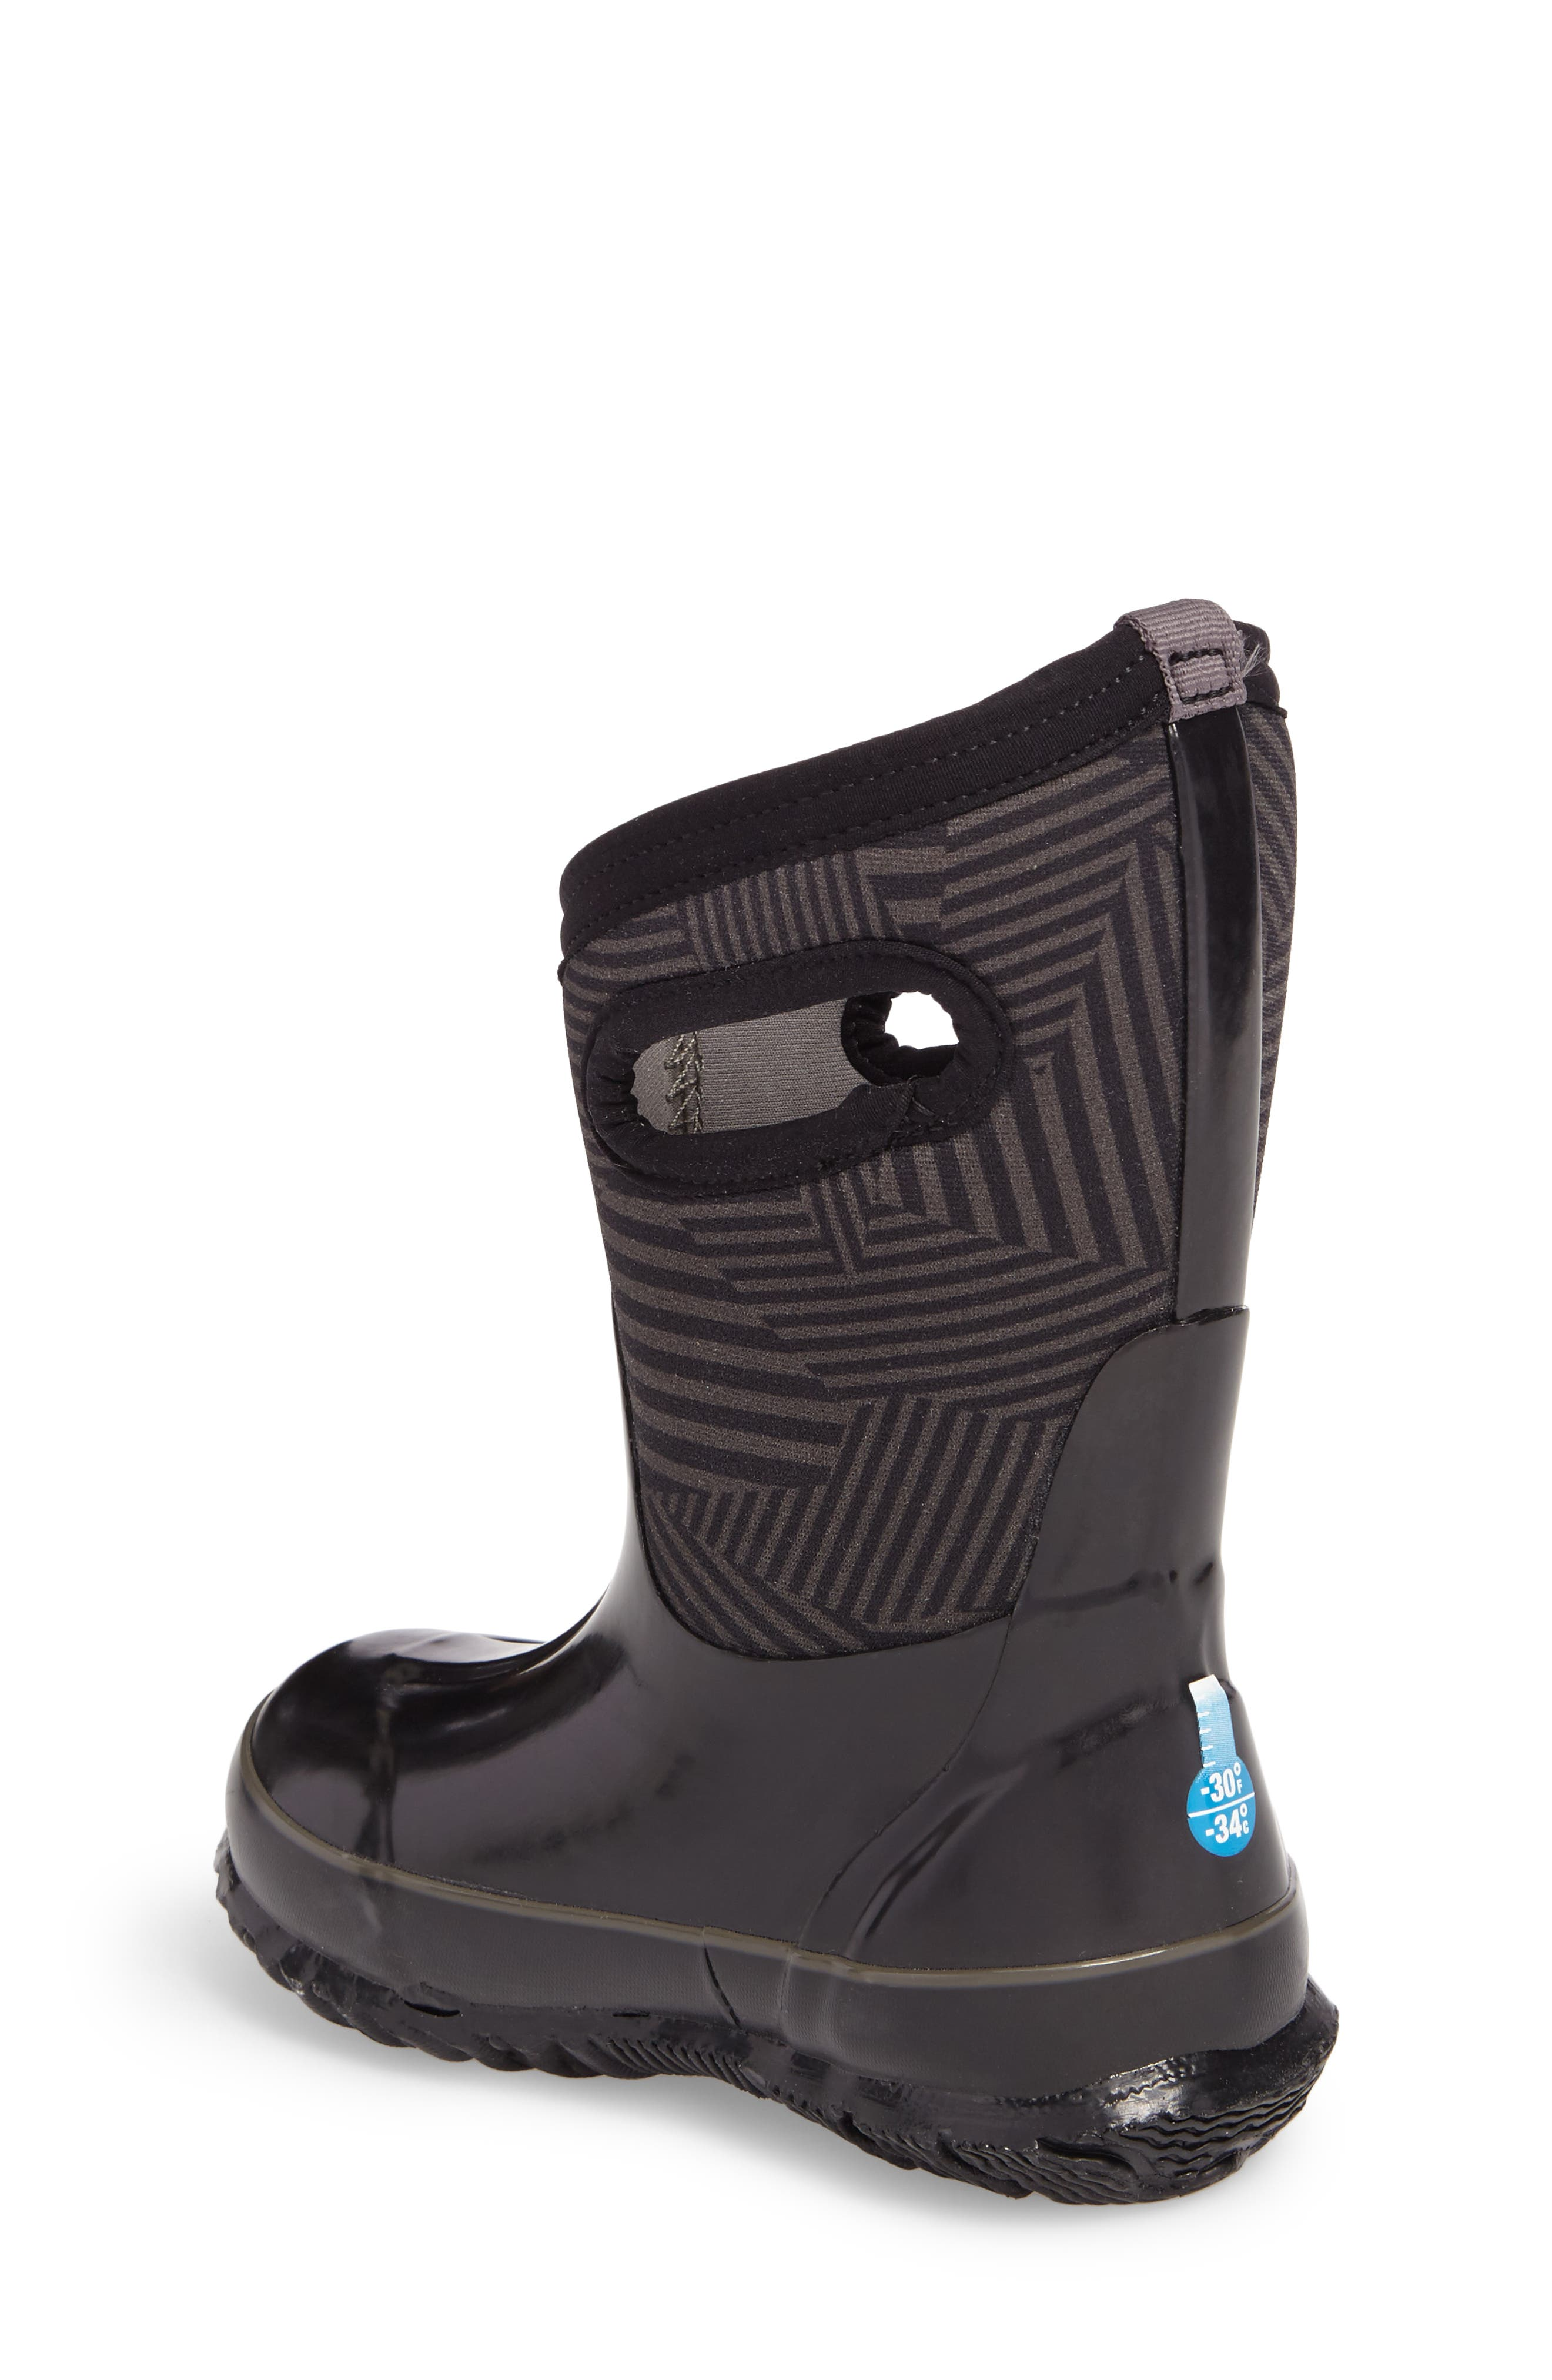 Alternate Image 2  - Bogs Classic Phaser Insulated Waterproof Boot (Toddler, Little Kid & Big Kid)